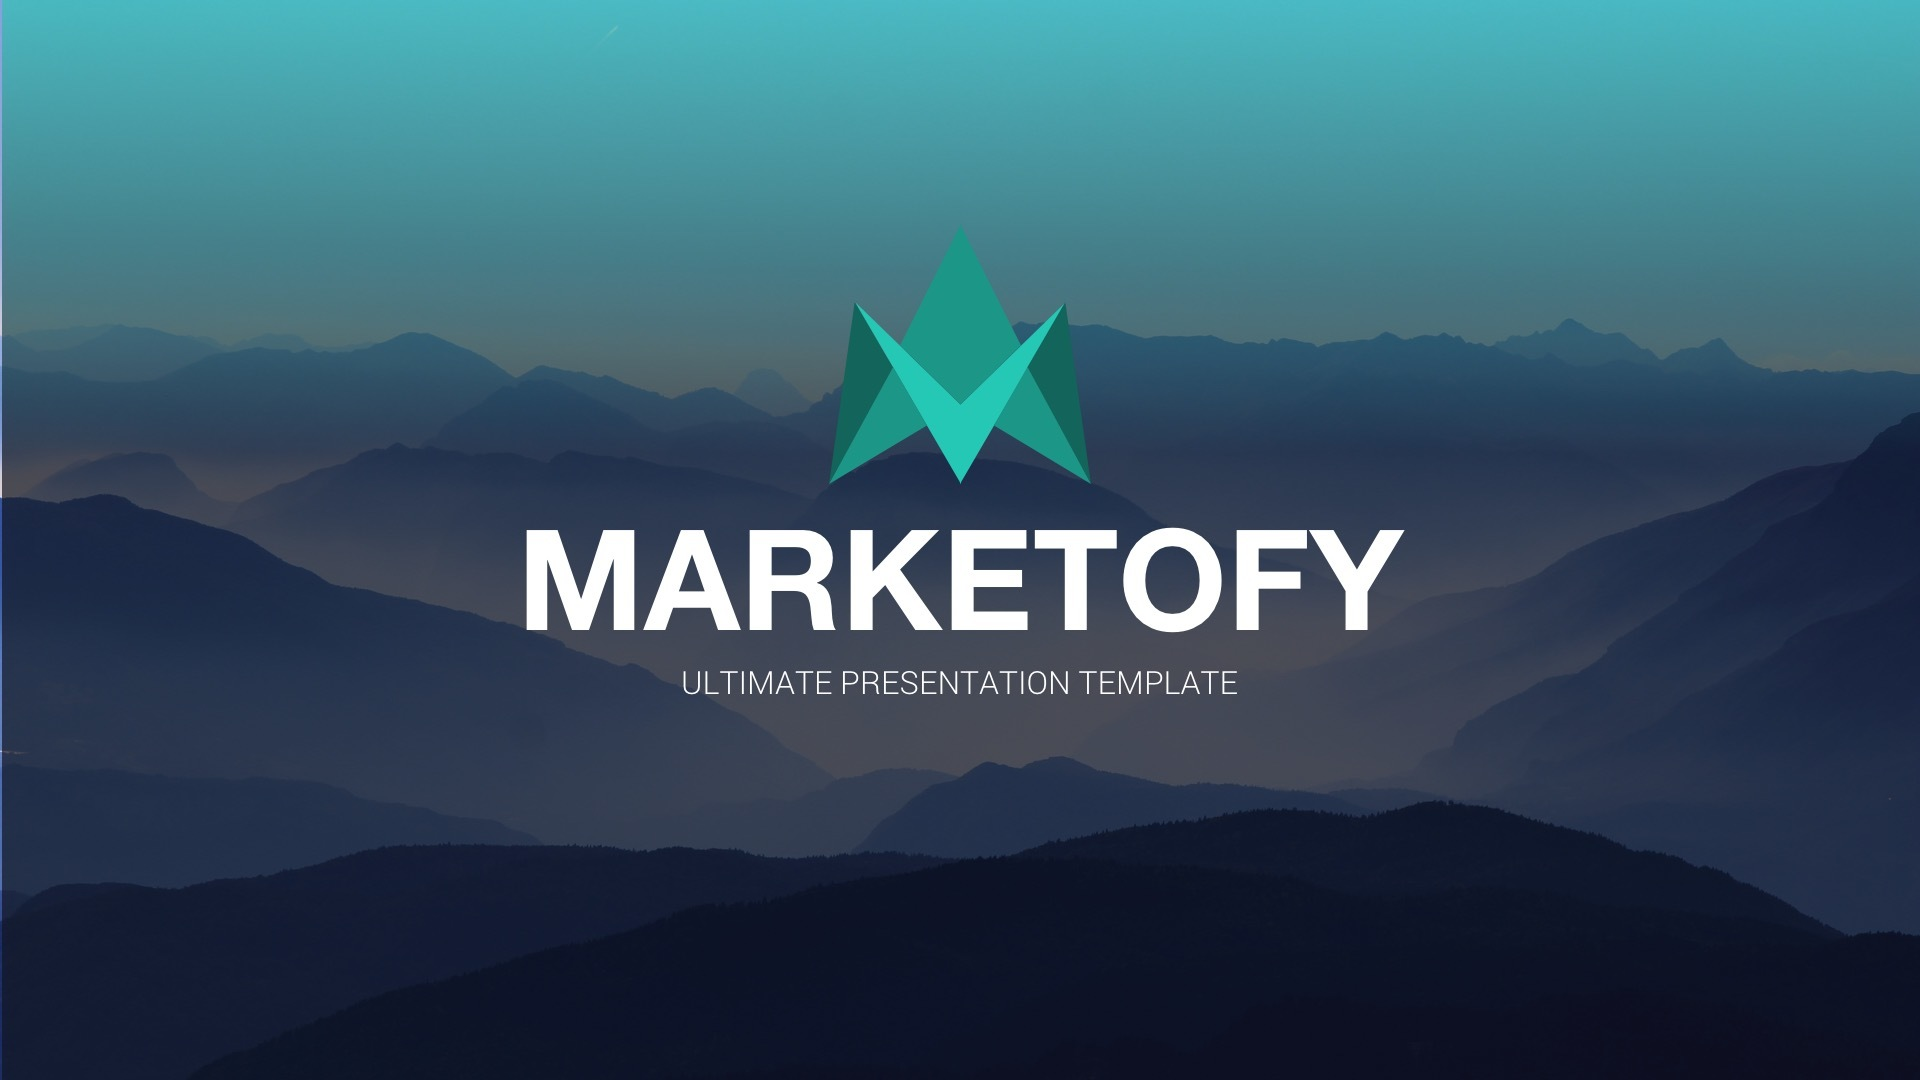 31 - Marketofy - Ultimate Google Slides Template